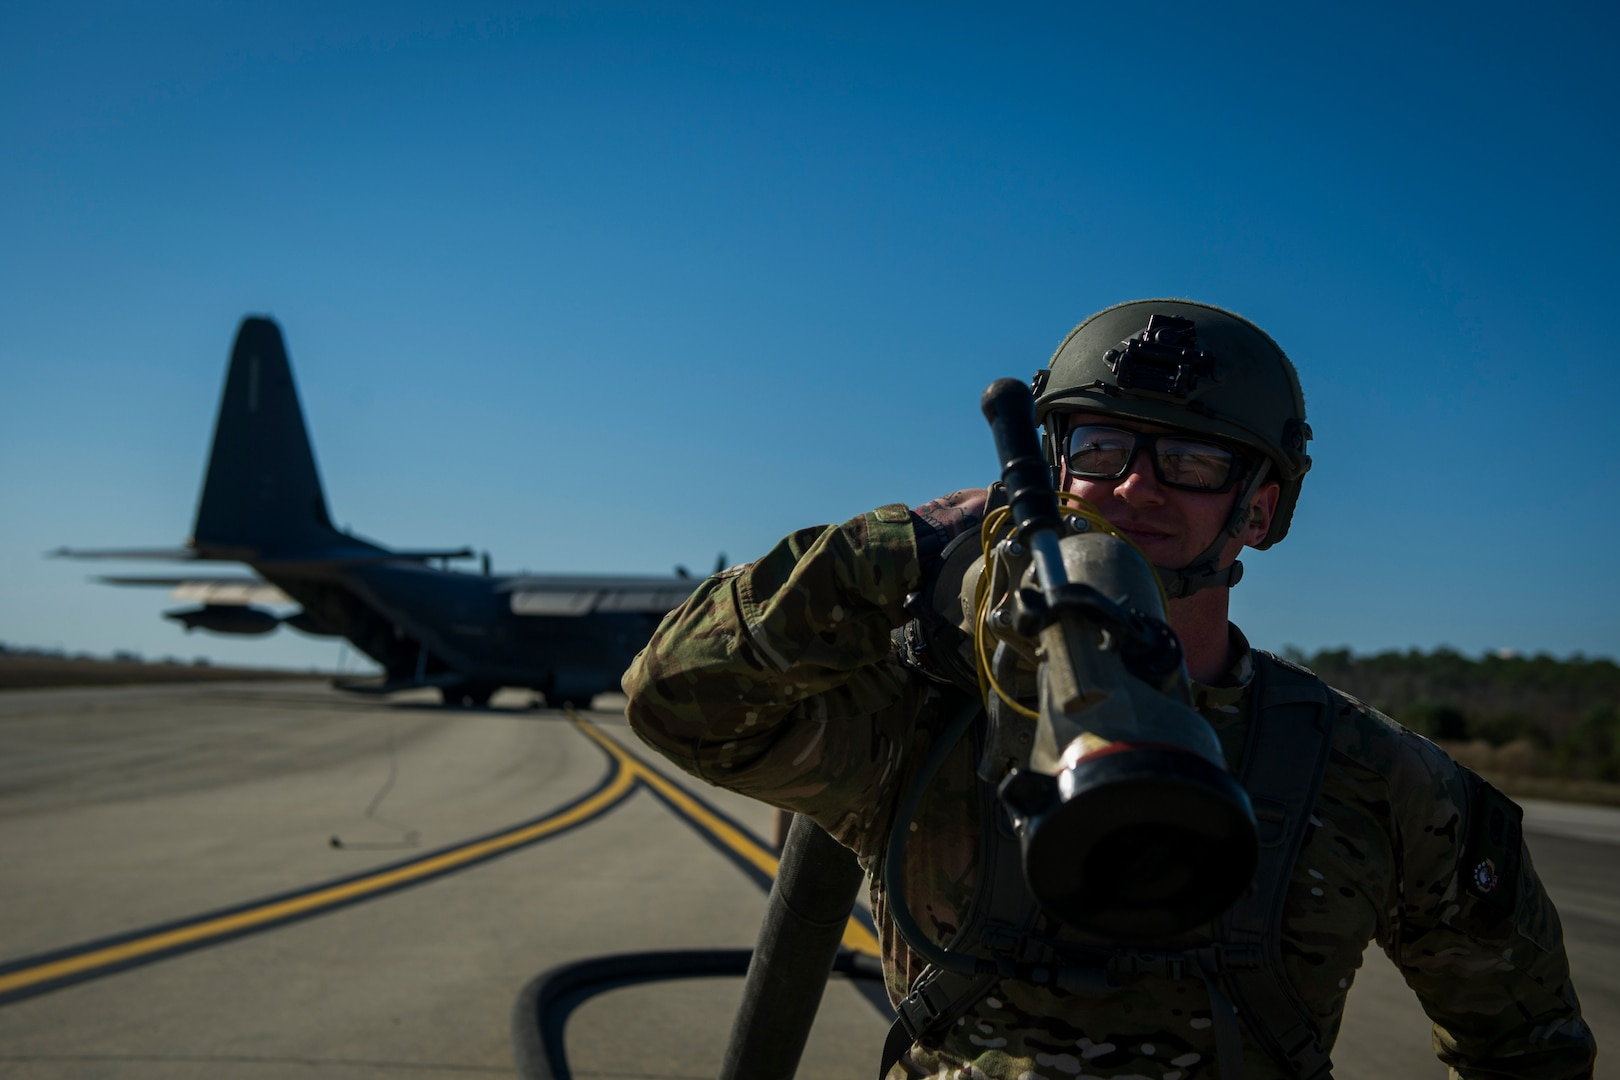 Airman with 1st Special Operations Logistic Readiness Squadron conducts forward area refueling point operation at Hurlburt Field, Florida, February 26, 2017 (U.S. Air Force/Joseph Pick)